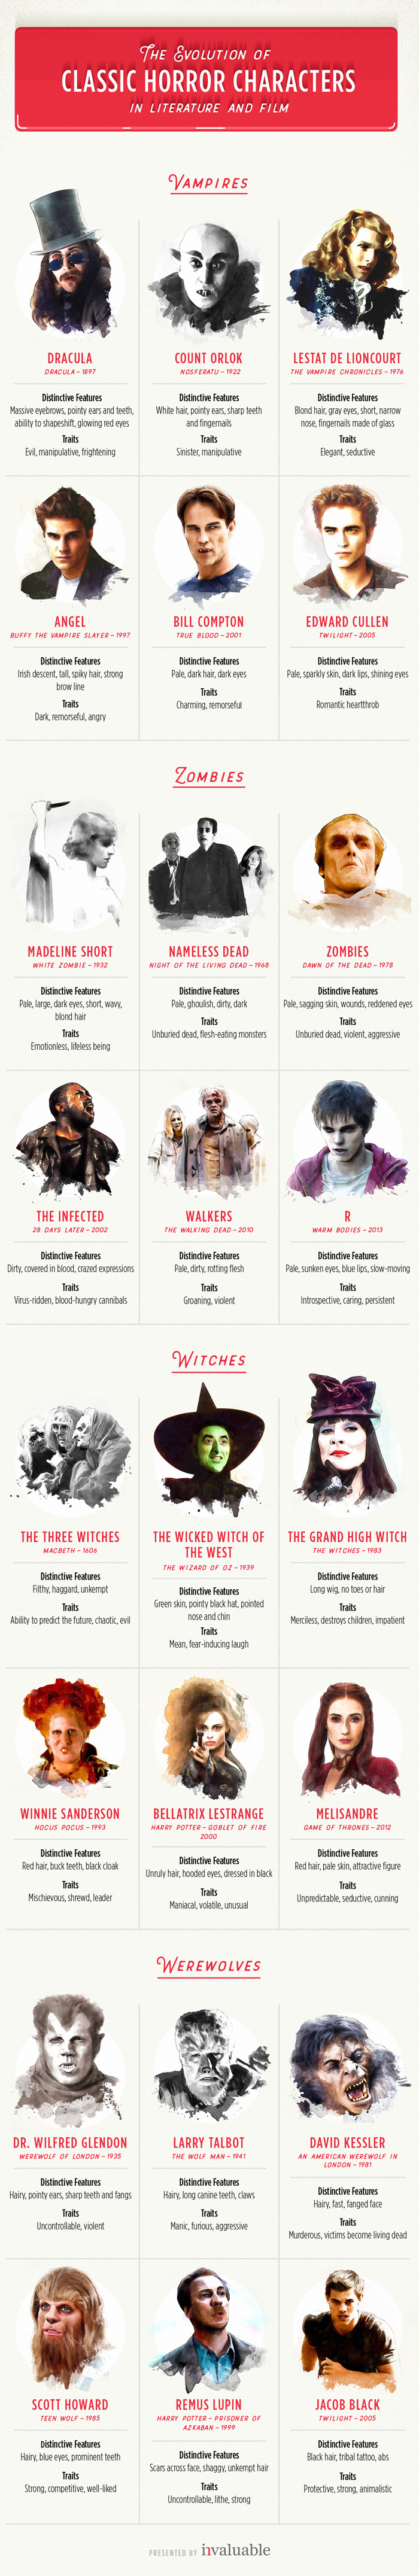 The Evolution of Classic Horror Characters